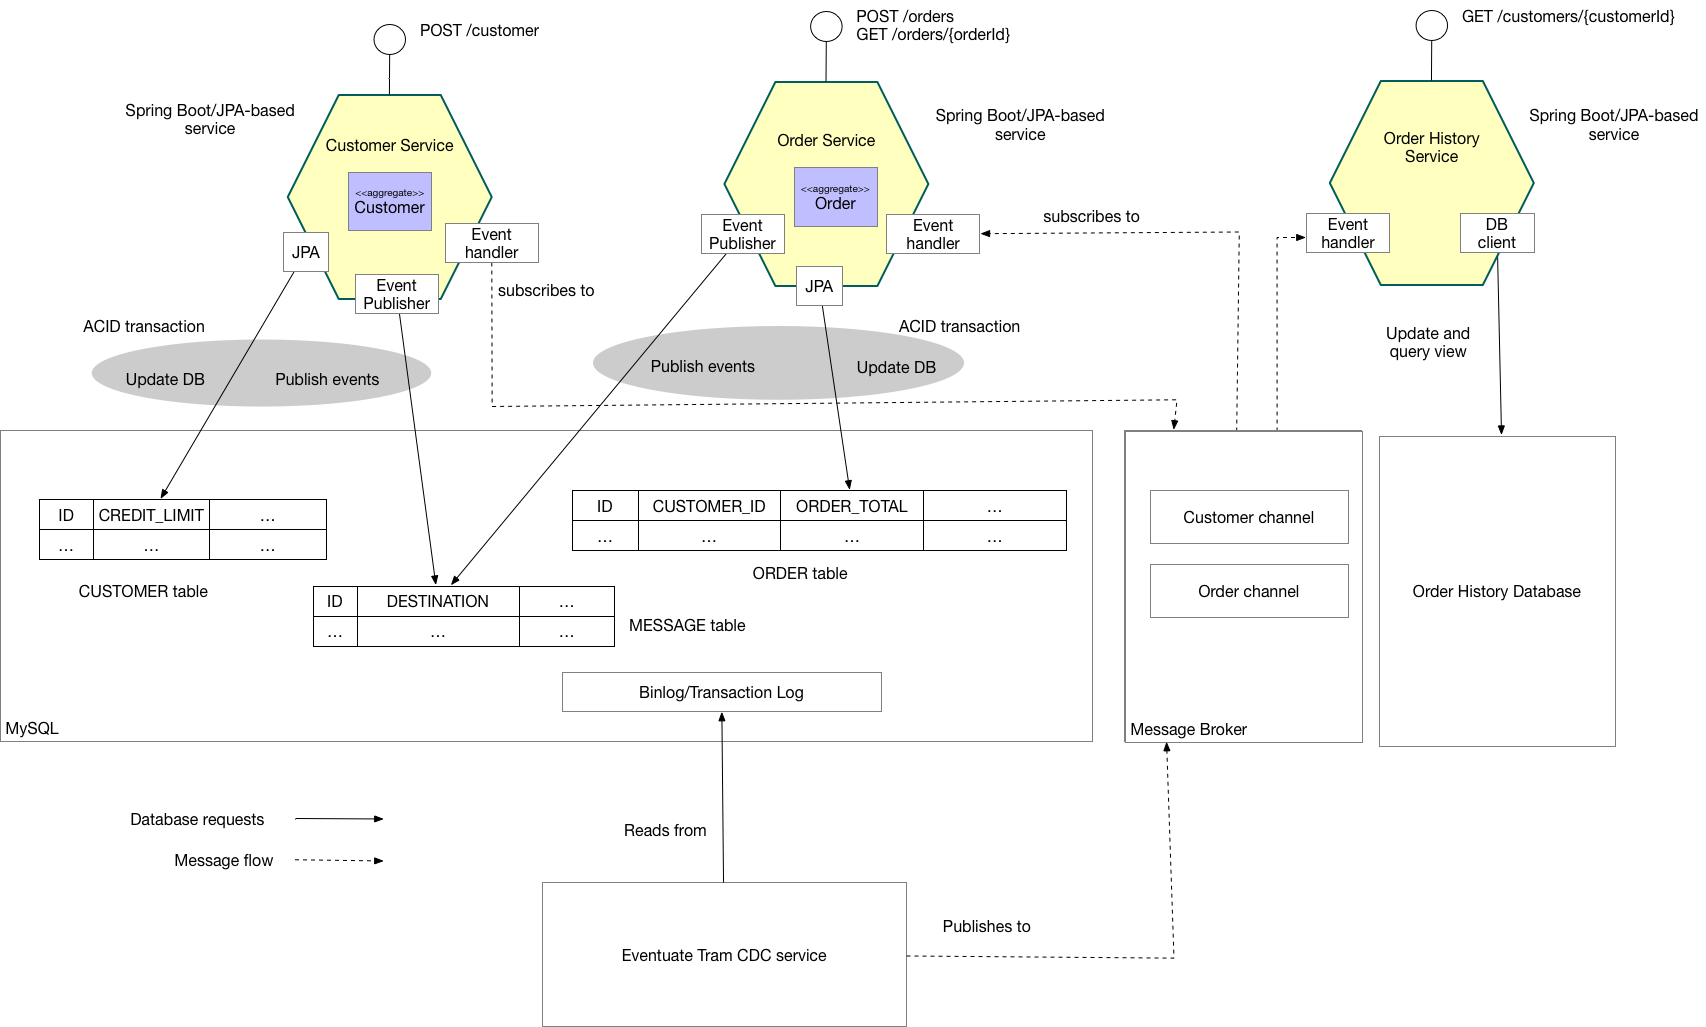 Eventuate Tram Customer and Order Redis Architecture